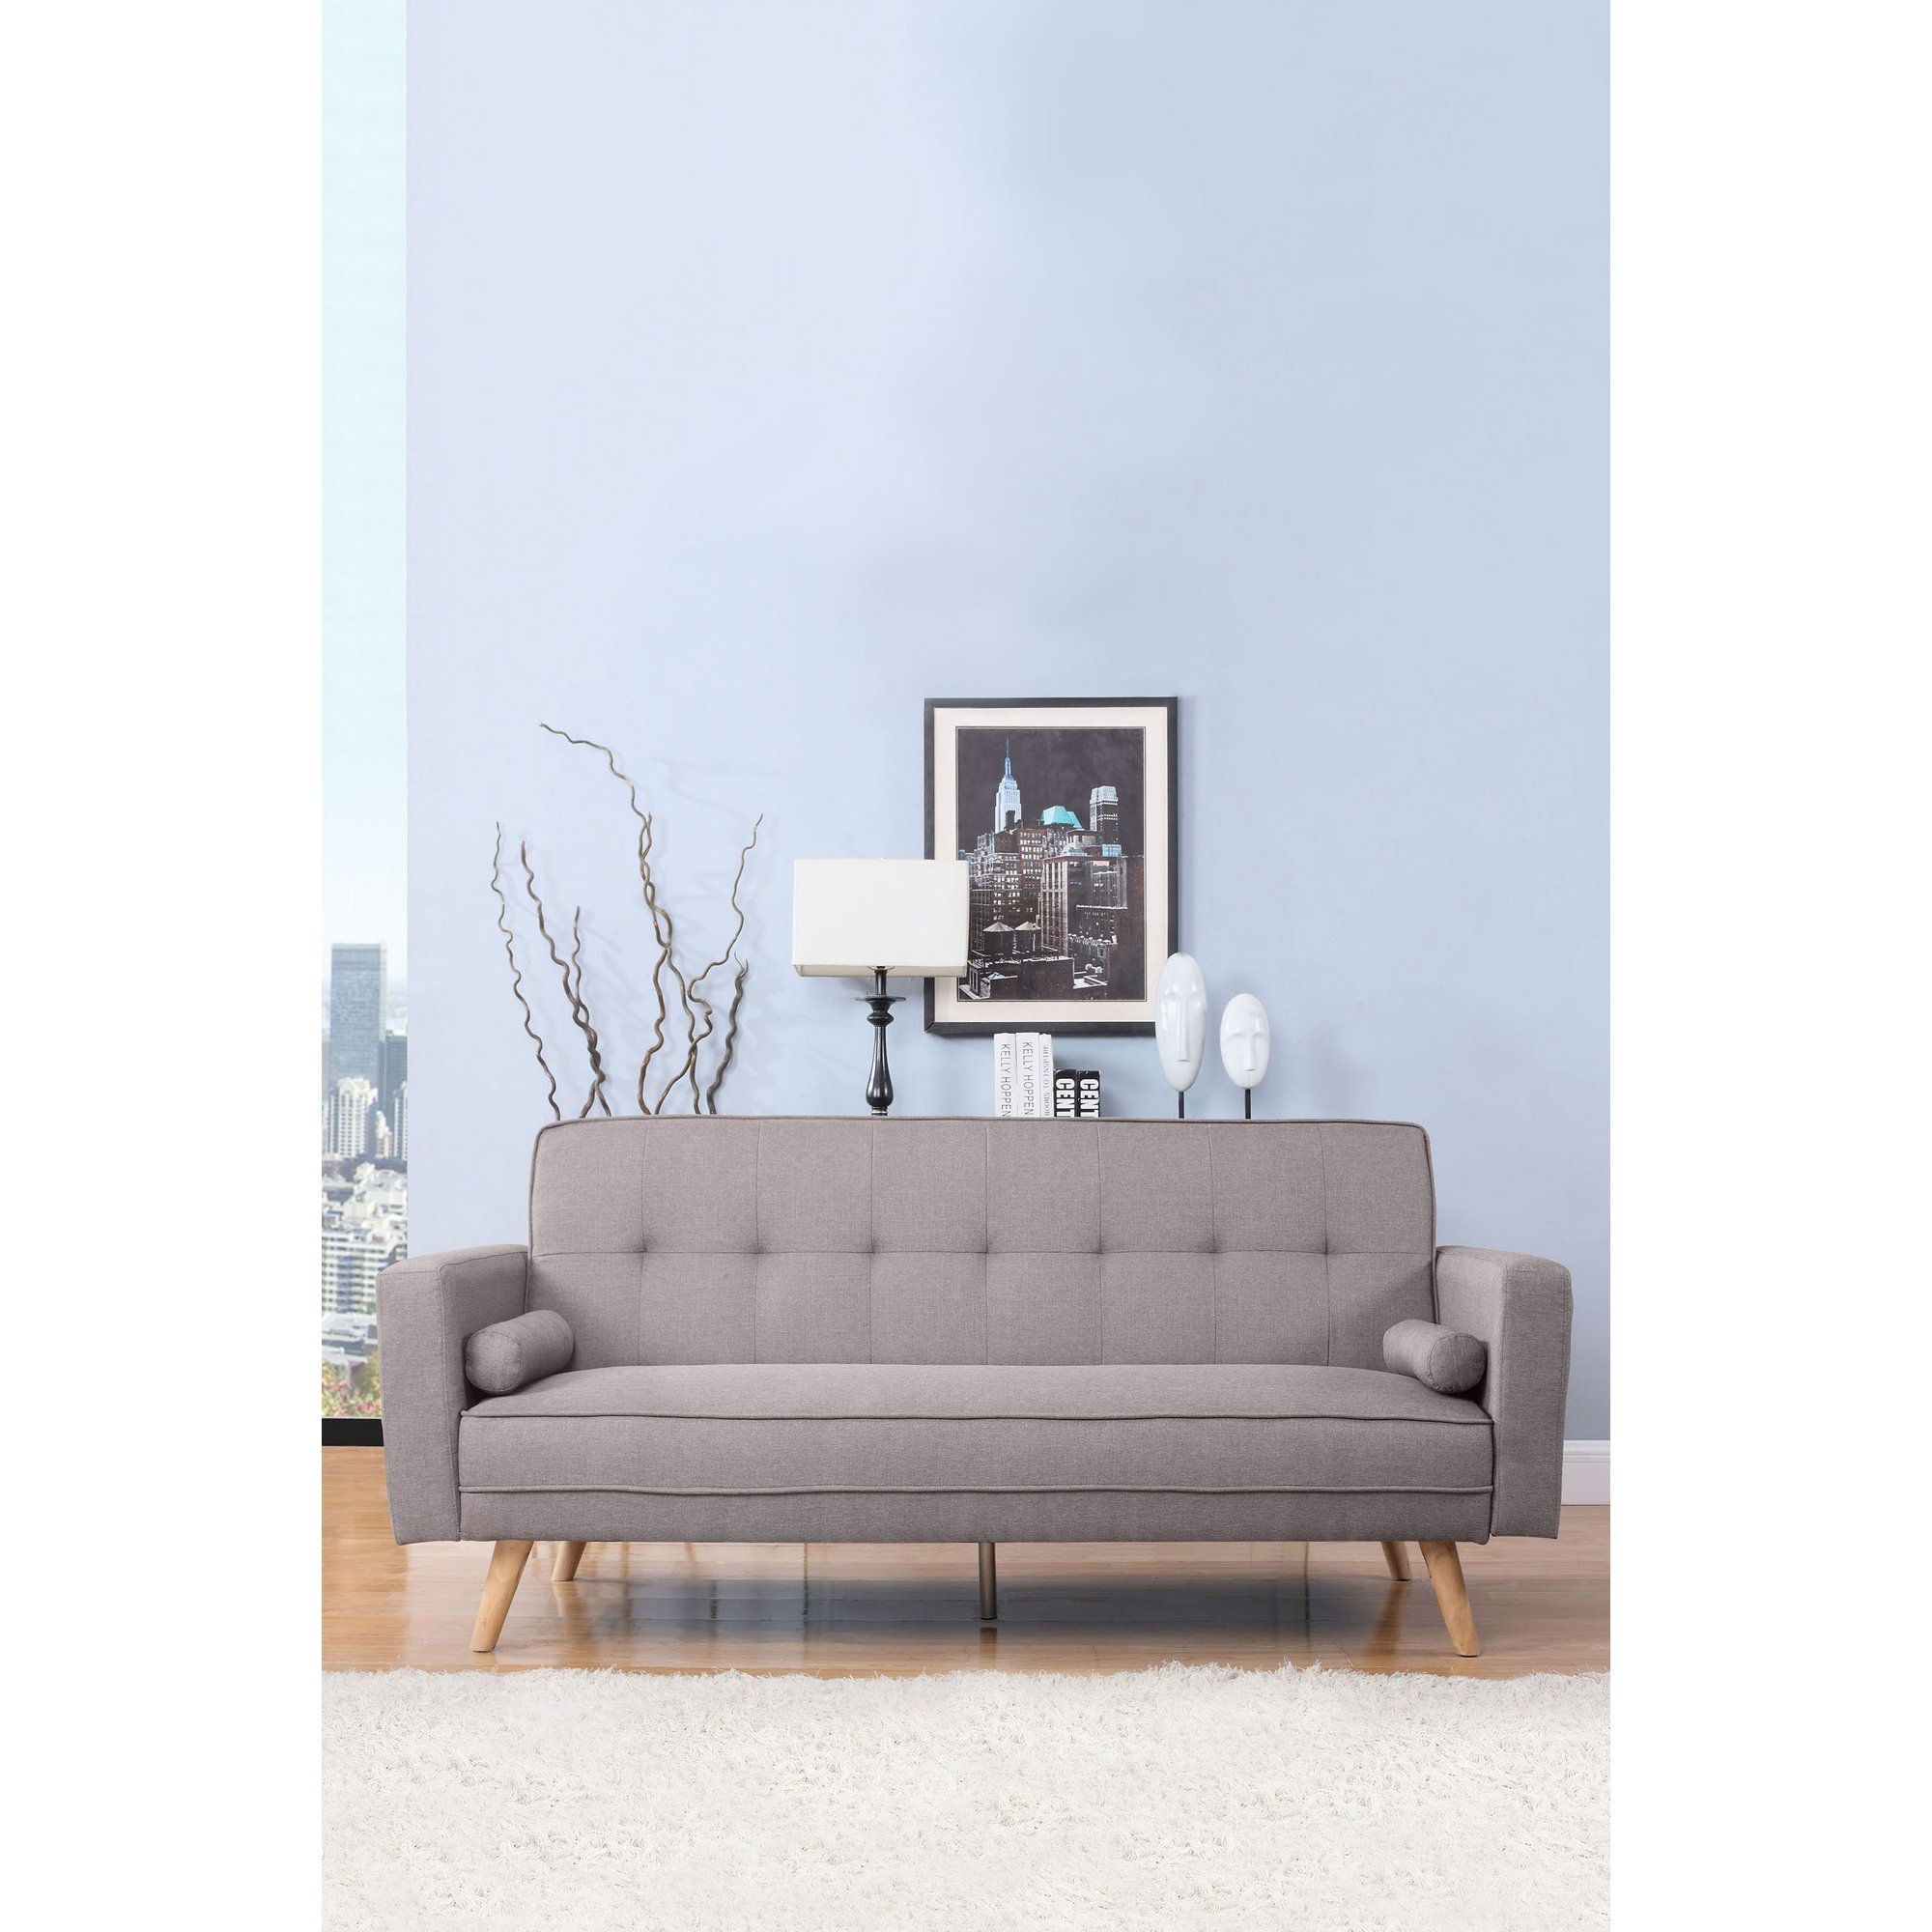 Image of Ethan Large Sofabed